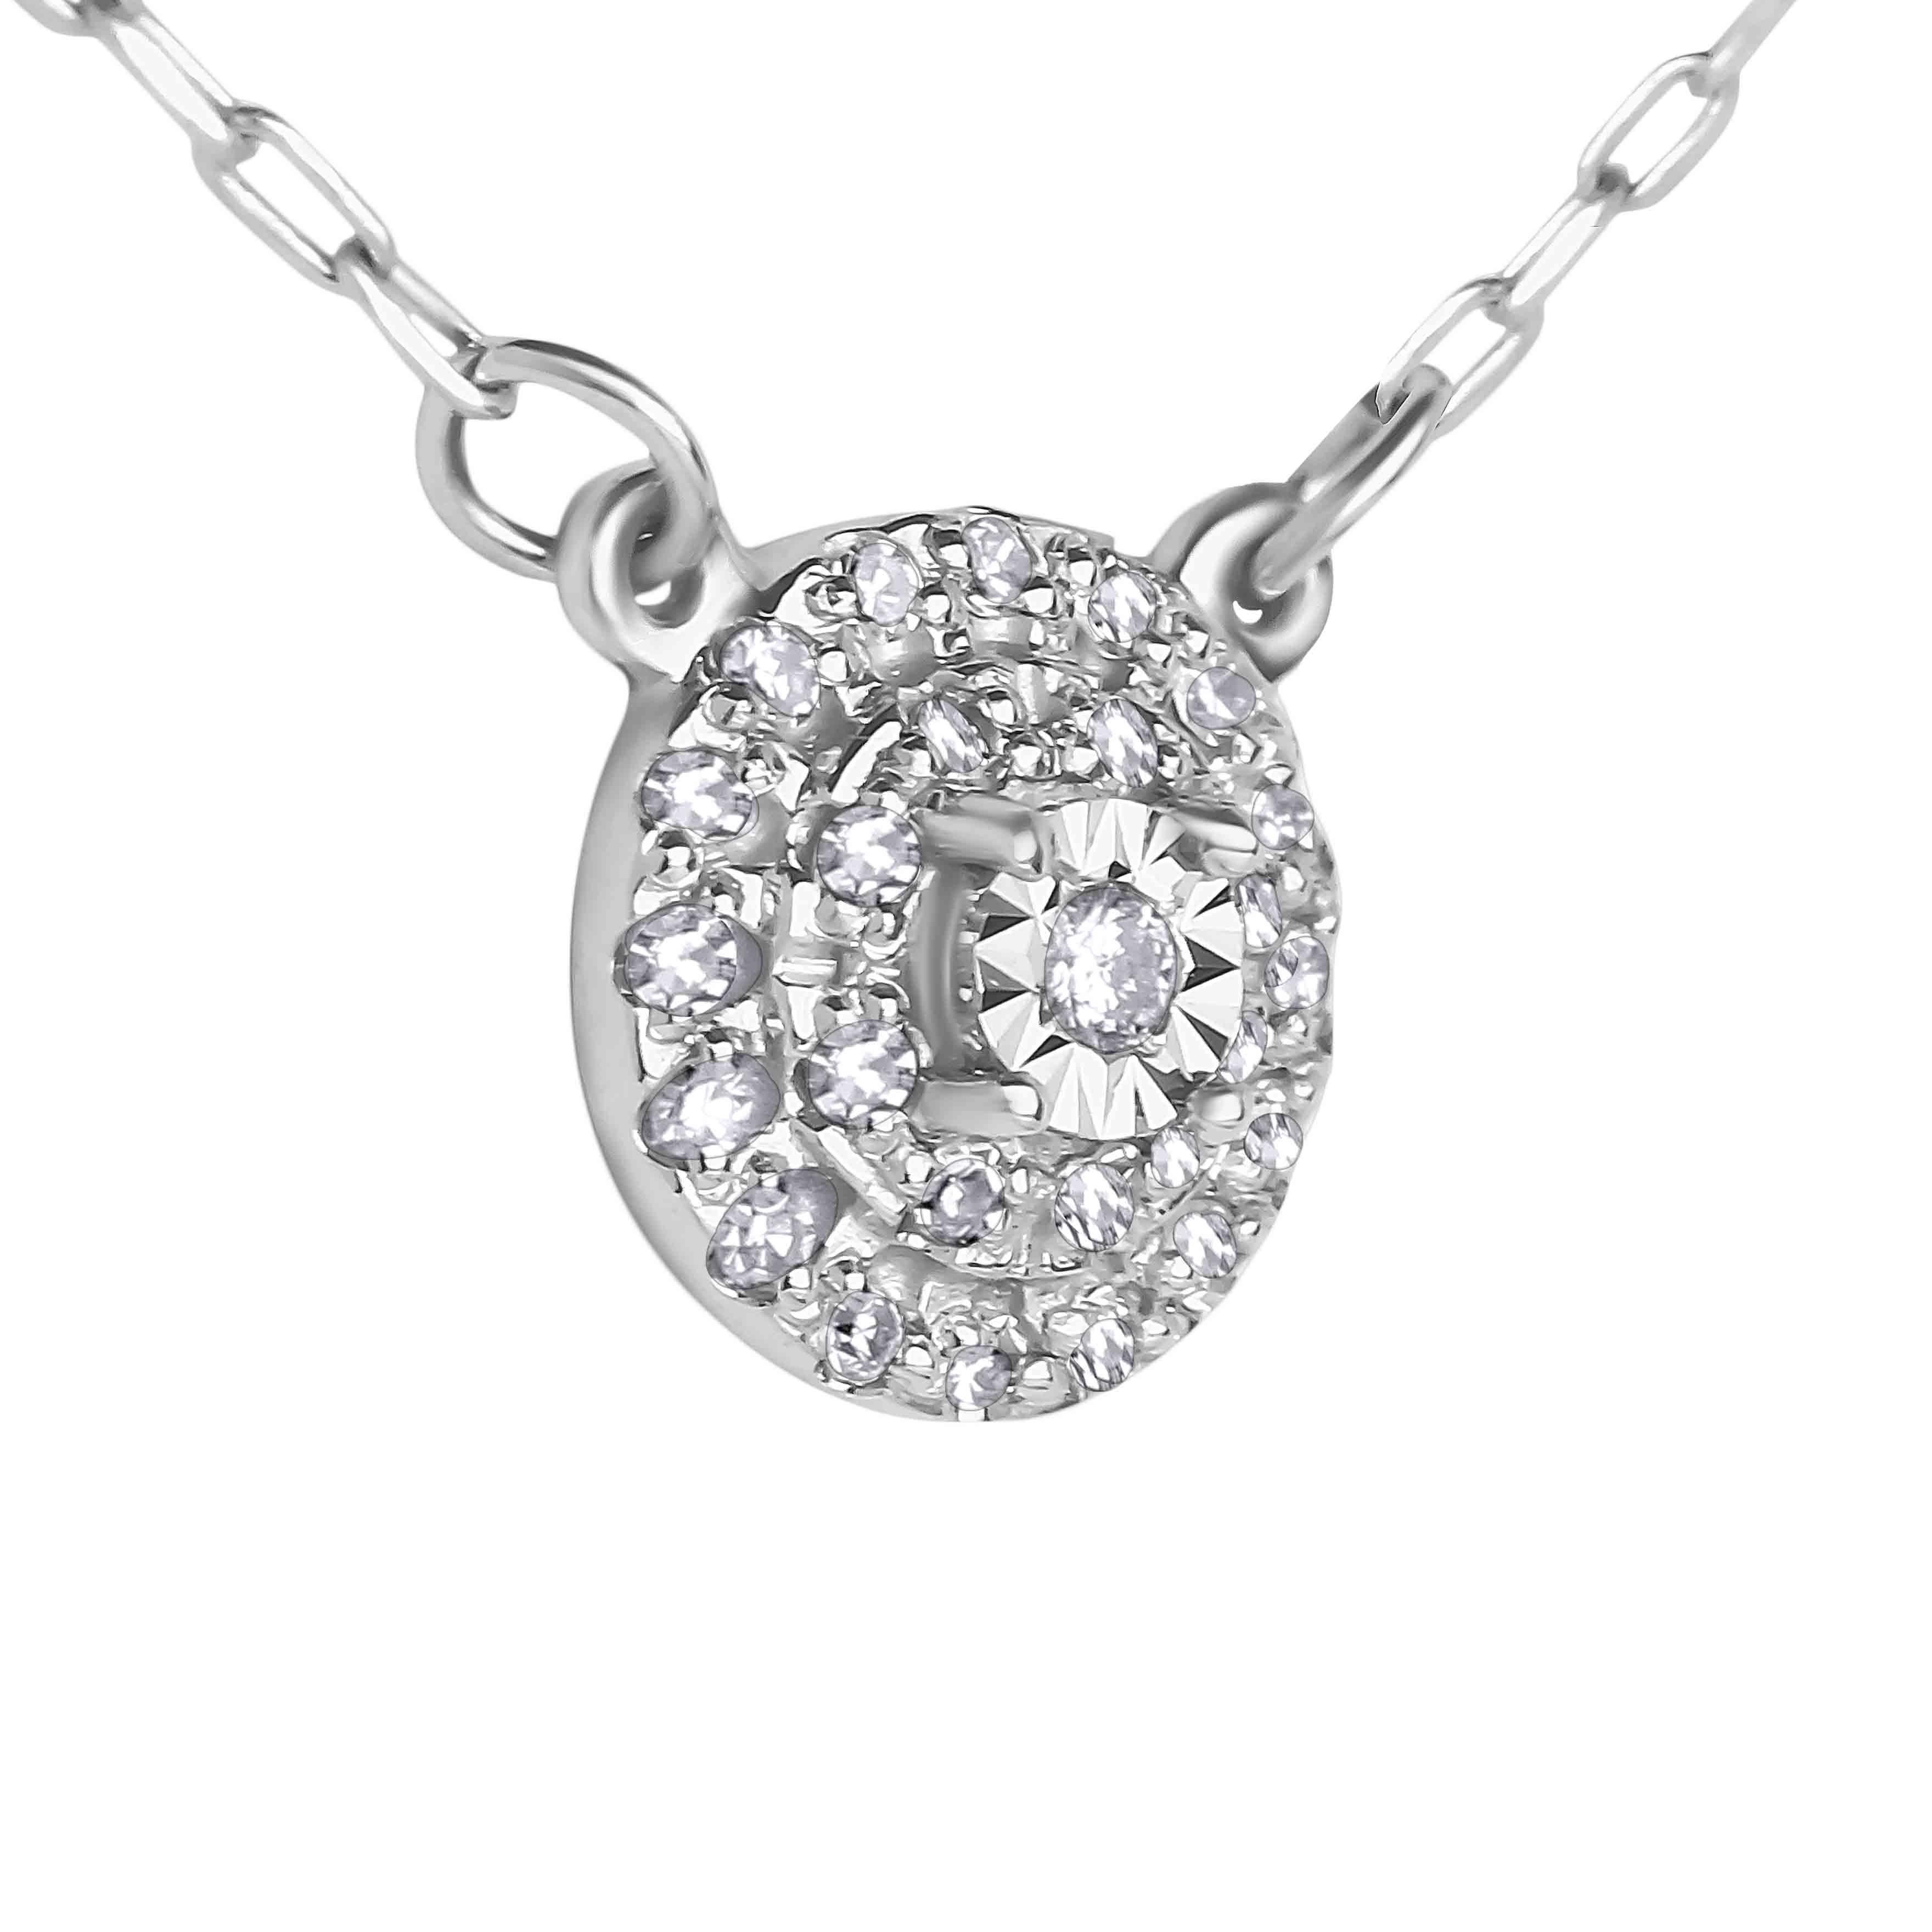 Illusion-set Diamond with Double Diamond Halo White Gold Necklace. View 3